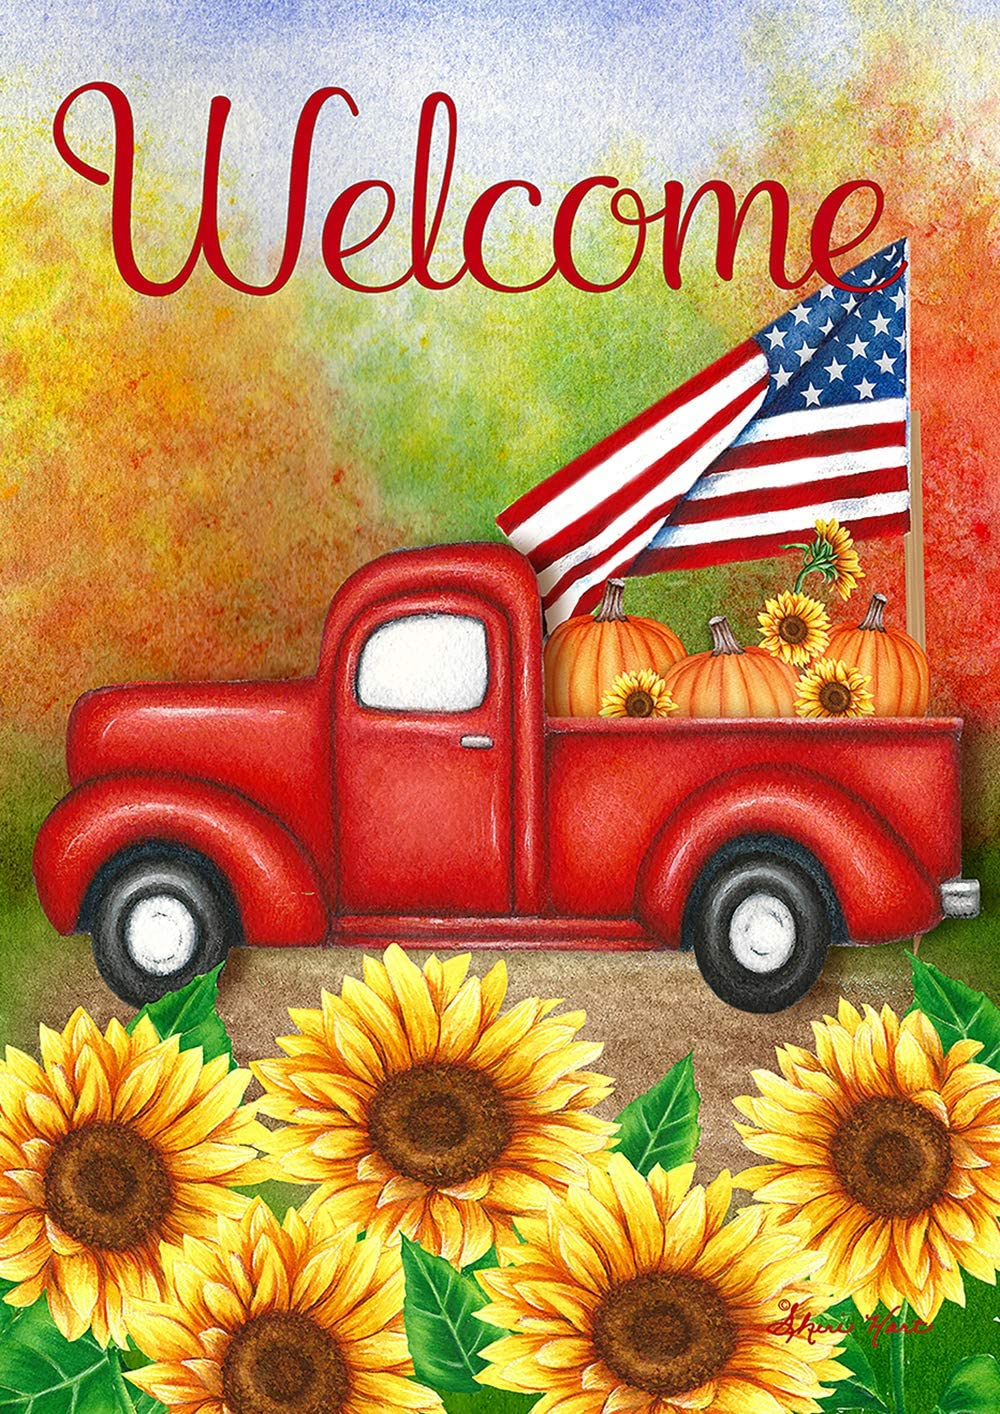 "Toland Home Garden 1112207 Welcome Harvest Truck 12.5 x 18 Inch Decorative, Garden Flag (12.5"" x 18"")"